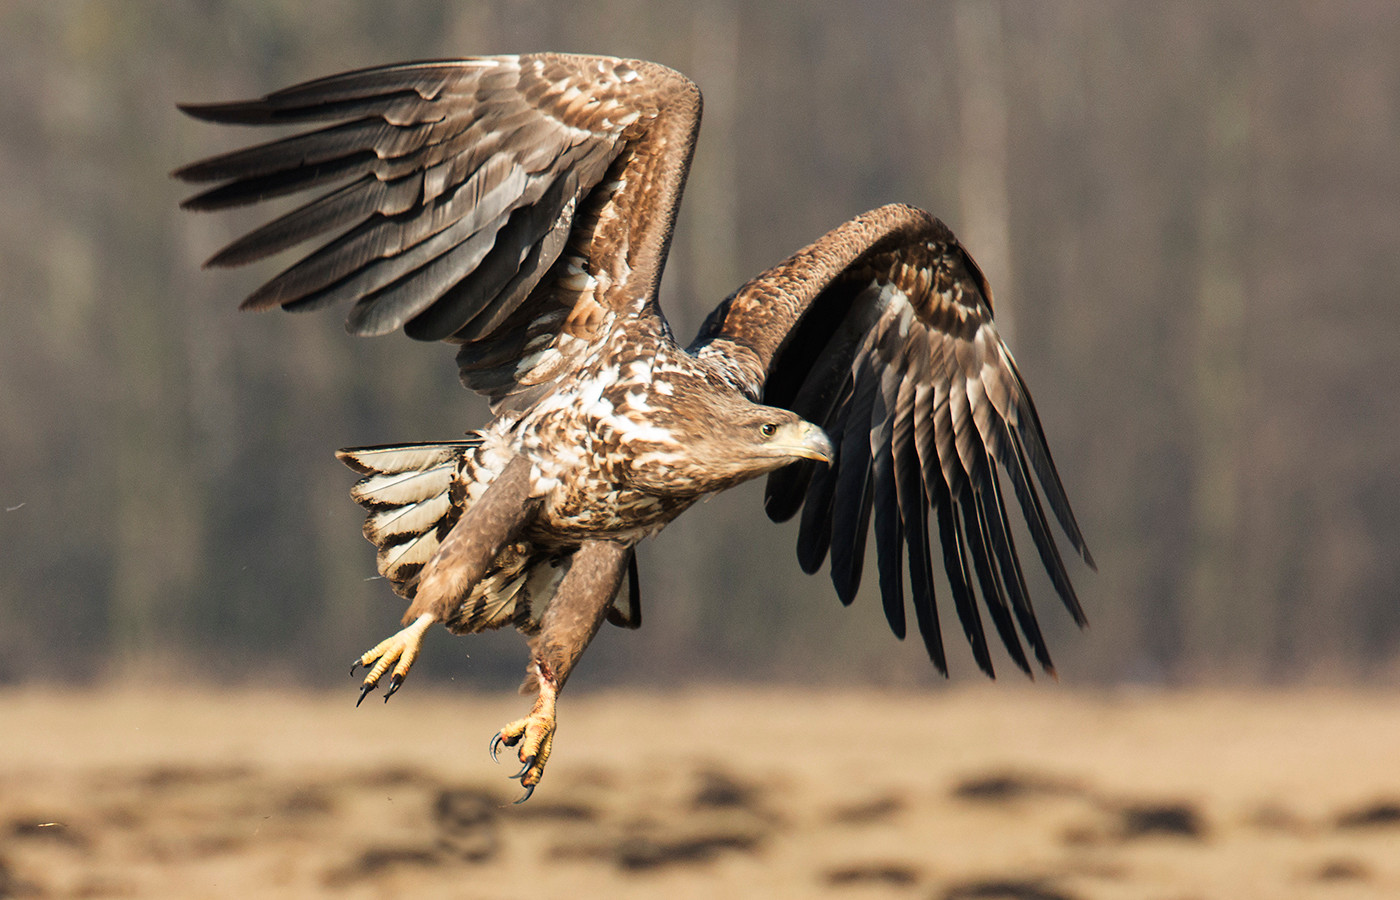 18 WHITE TAILED EAGLE AT SPEED by John Hunt